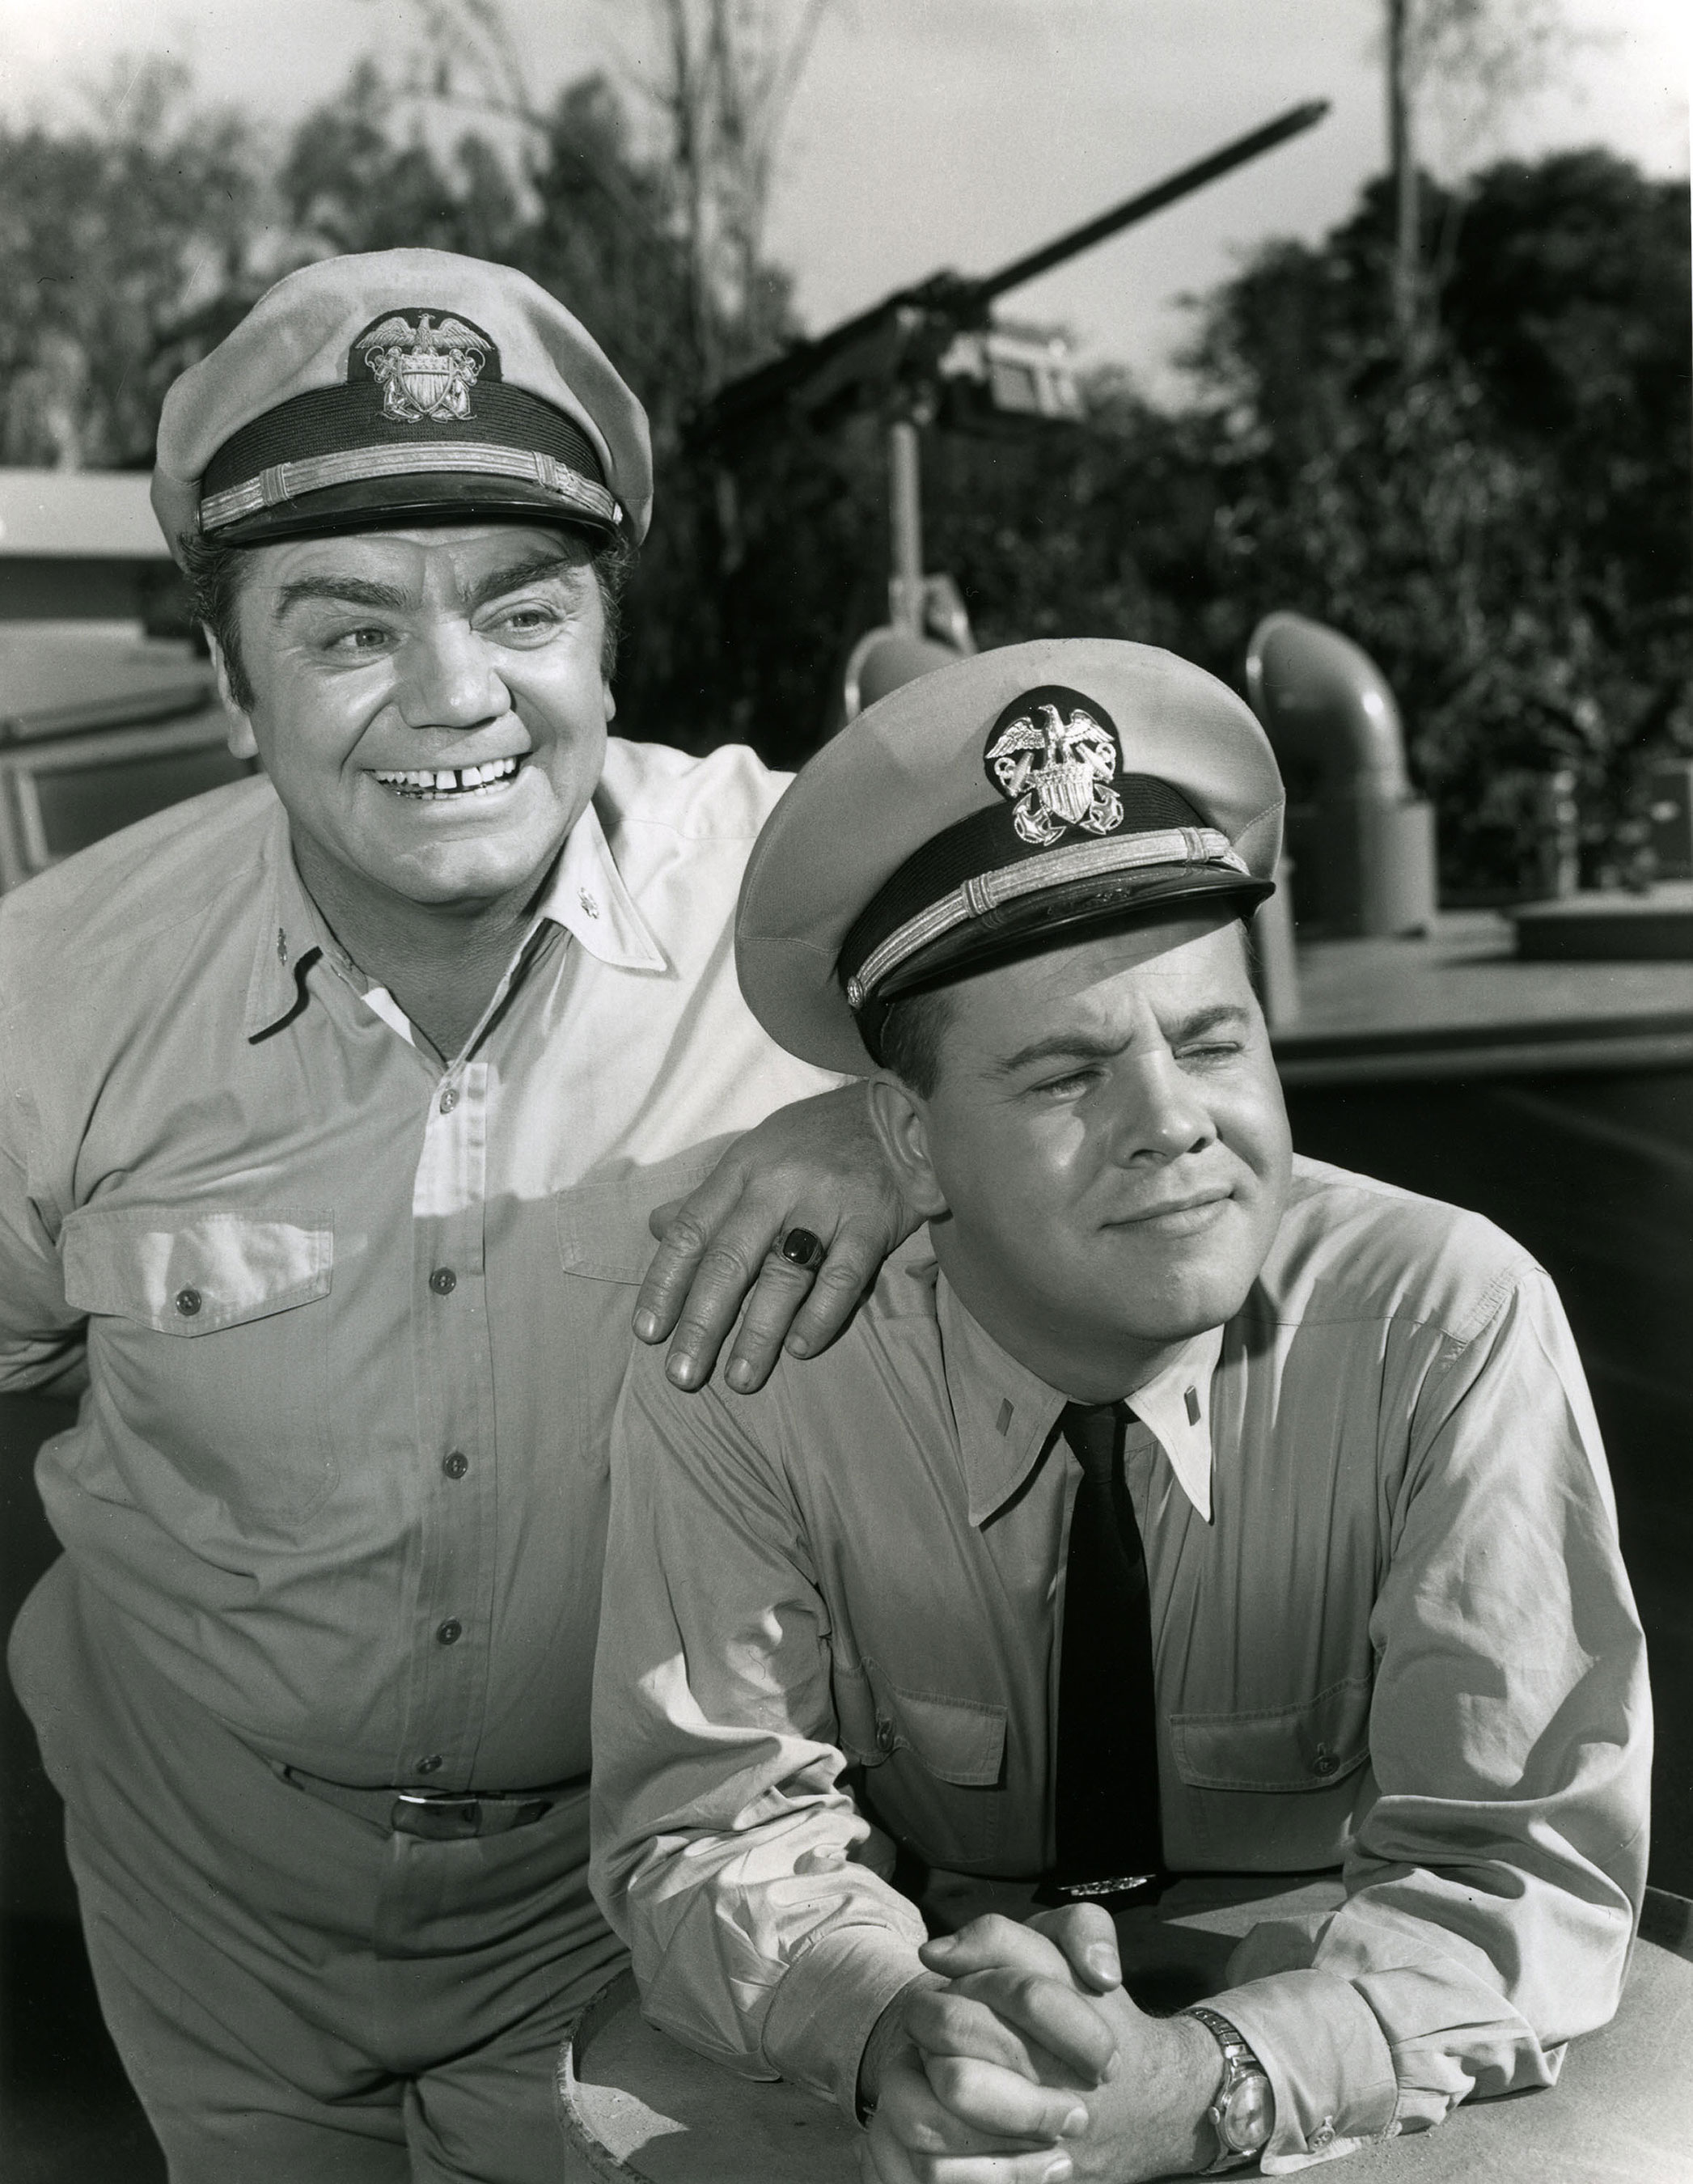 Tim Conway in his first film Mchale's Navy. The picture is B&W. He is with other star from the film.